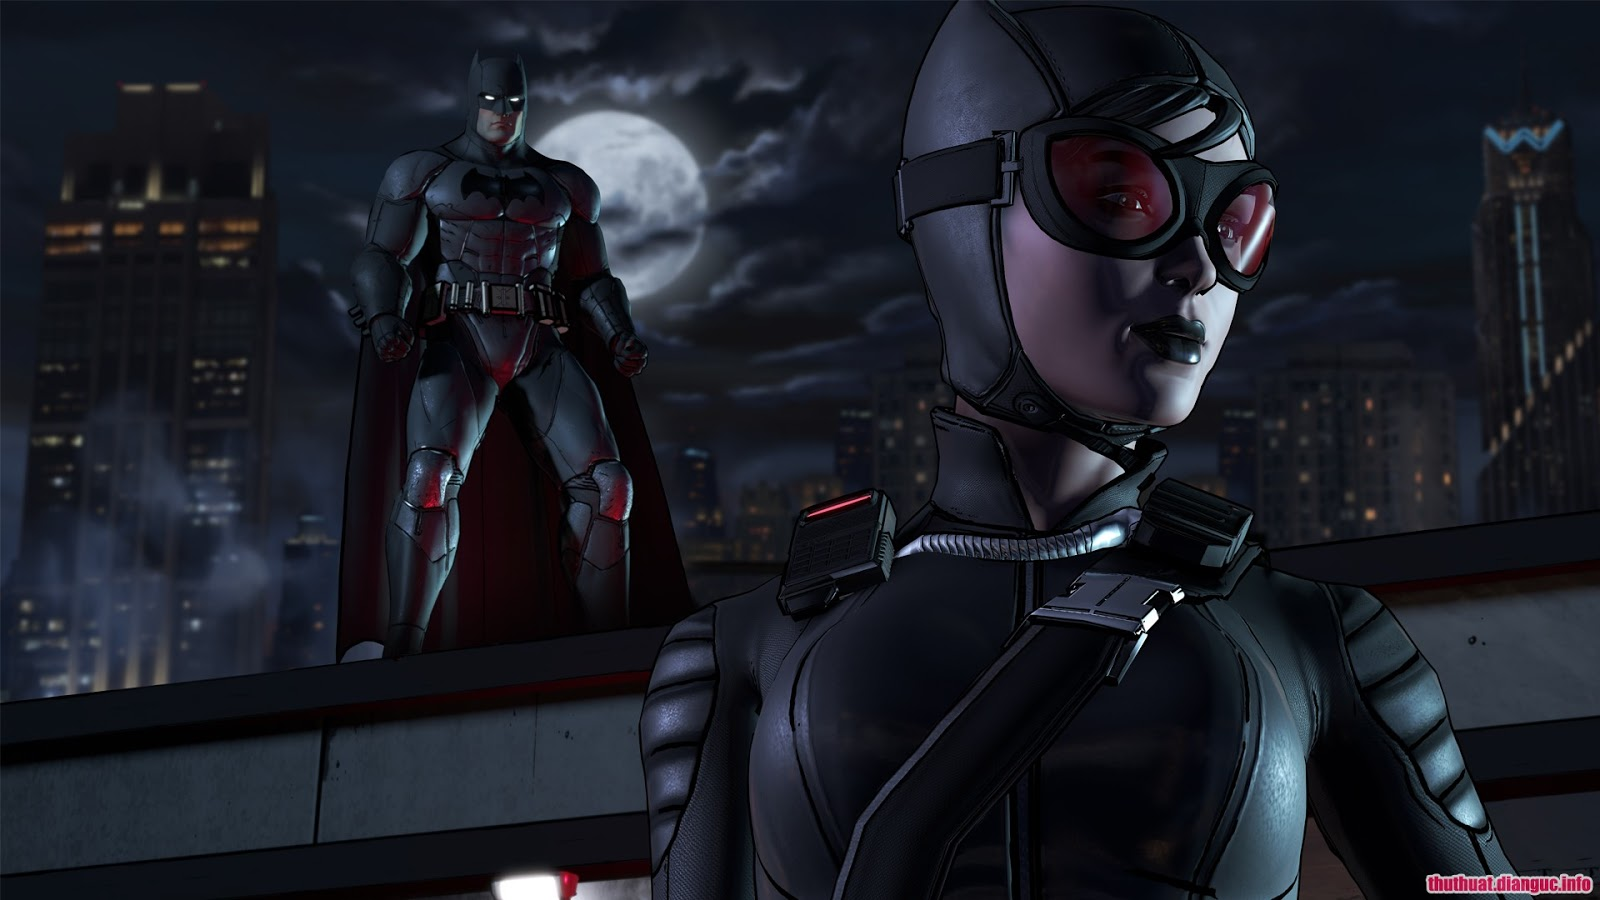 Batman – The Telltale Series: Episode 1, Batman – The Telltale Series: Episode 1 free download,